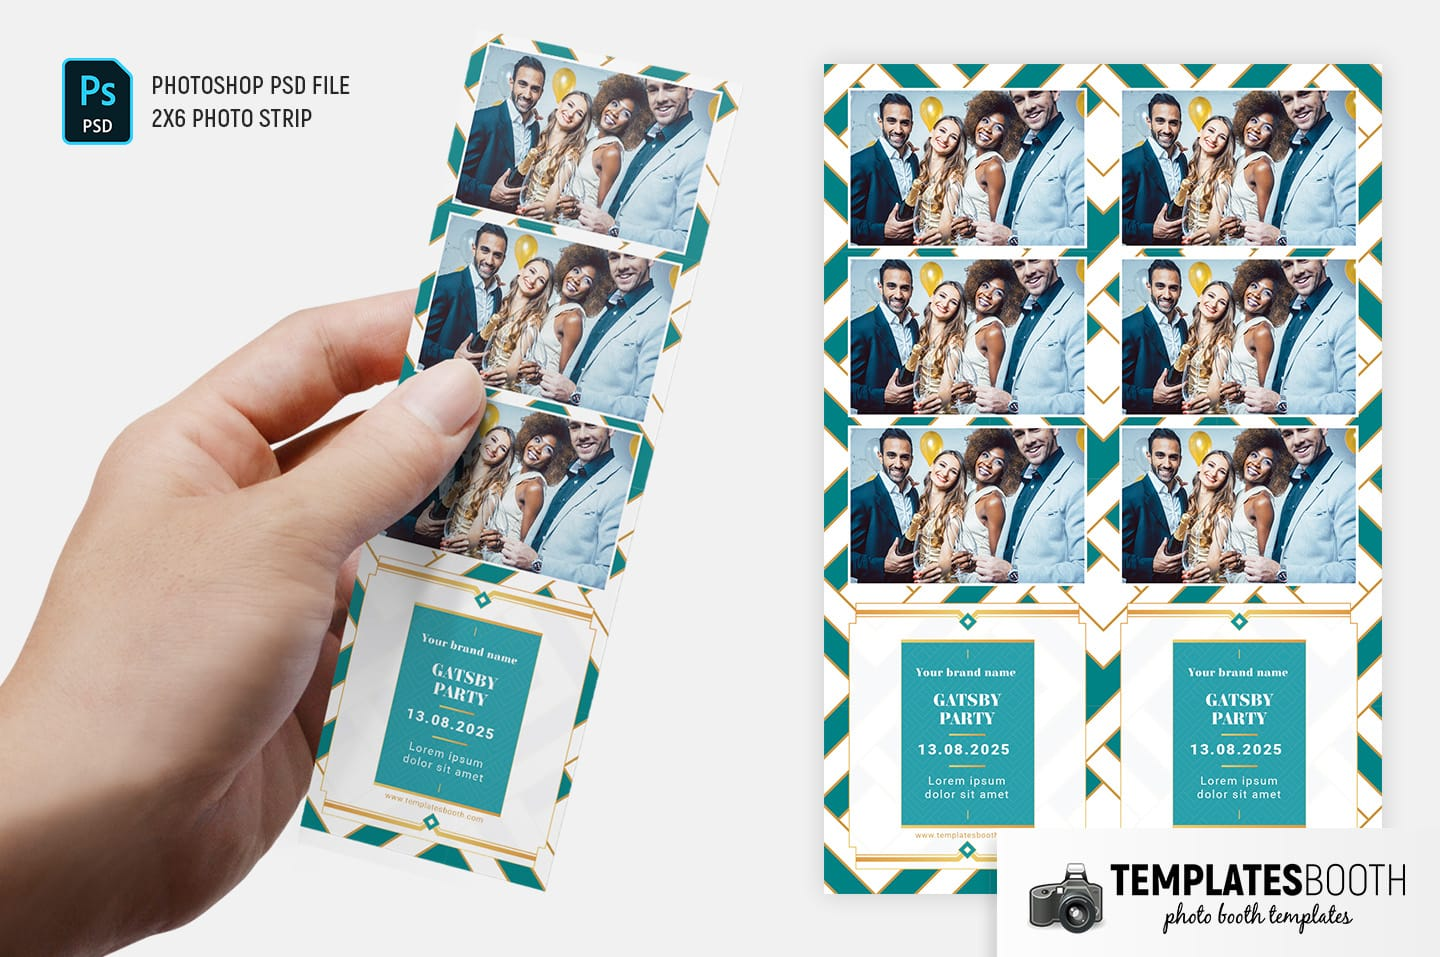 Turquoise Glamour Photo Booth Template (2x6 photo strip)